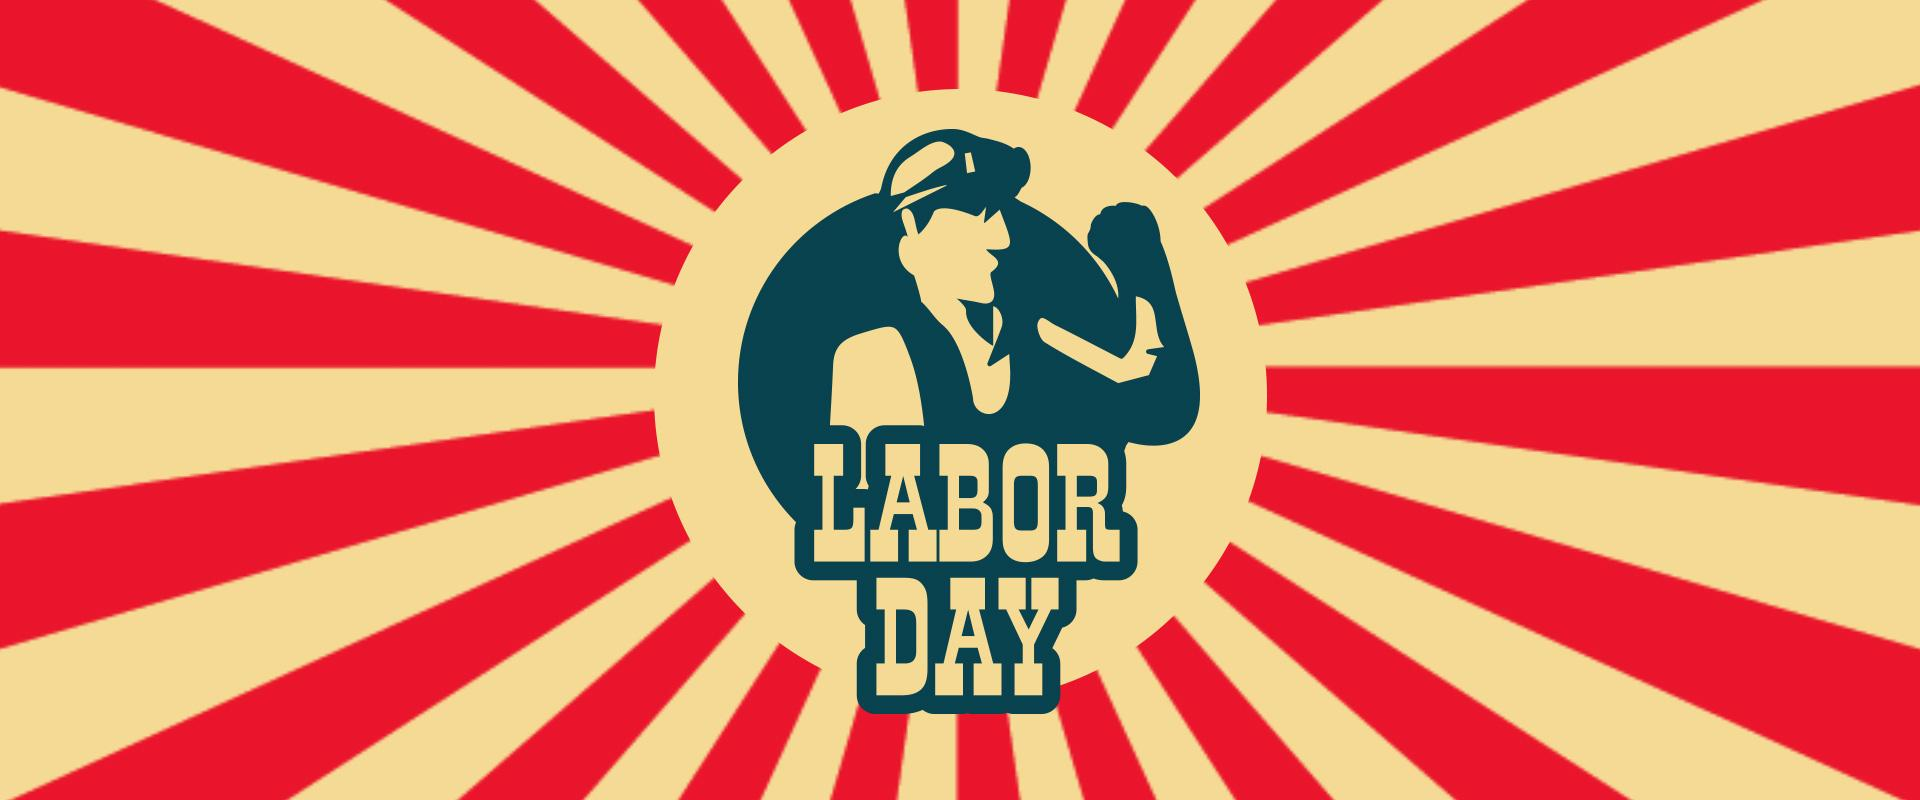 Labour Day Facebook Cover Picture